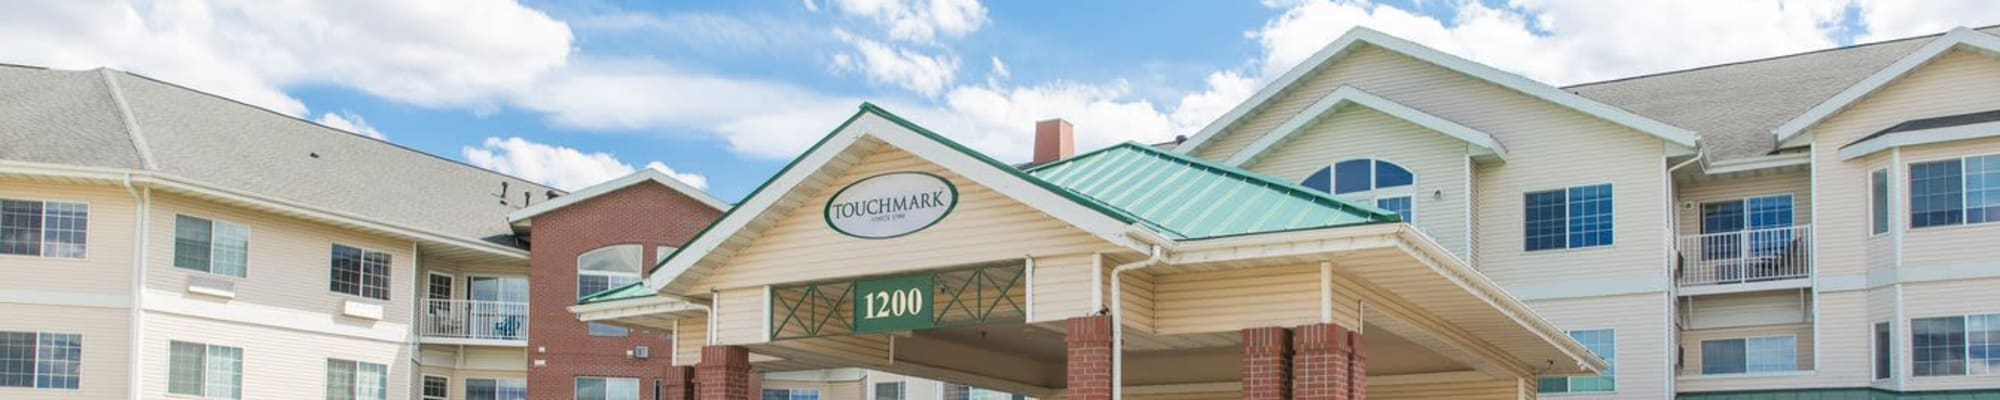 Dining at Touchmark at Harwood Groves in Fargo, North Dakota